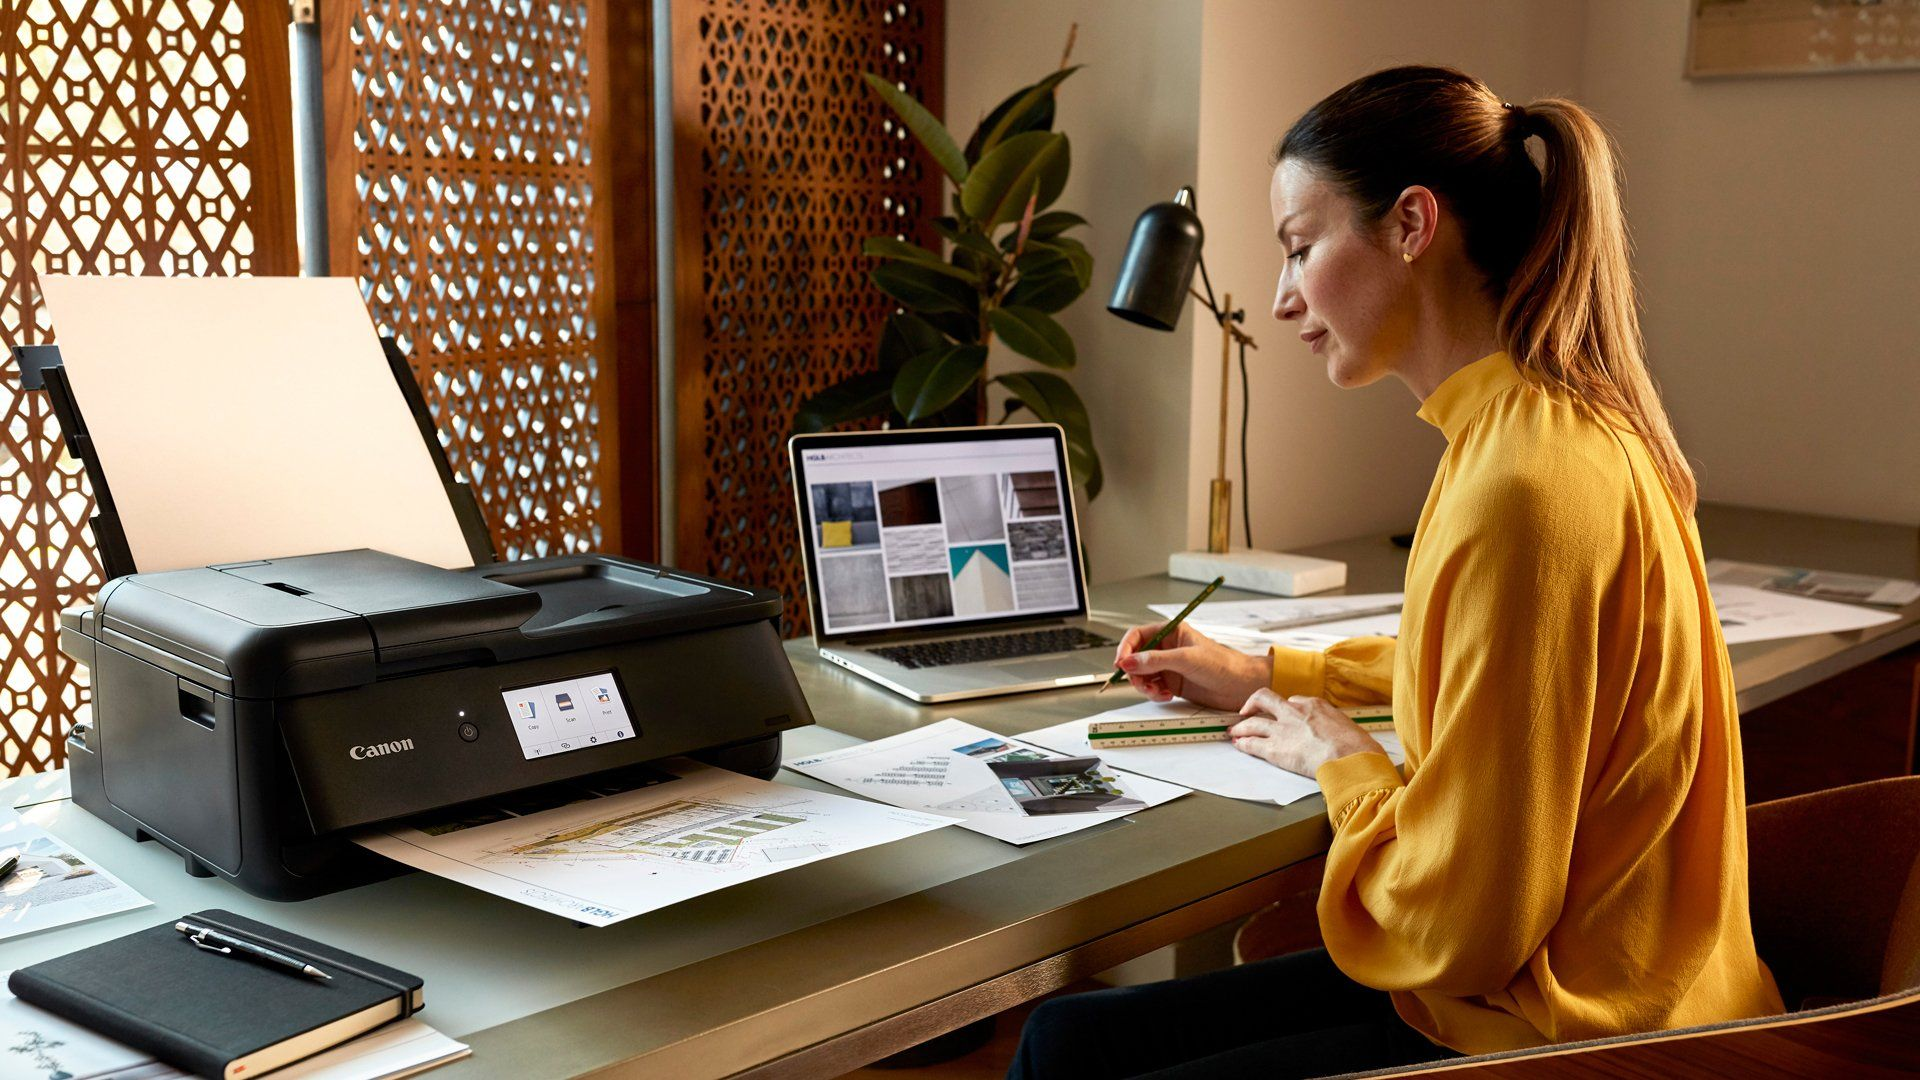 A female business owner prints with PIXMA TS9550 while drawing and using a ruler at her desk.